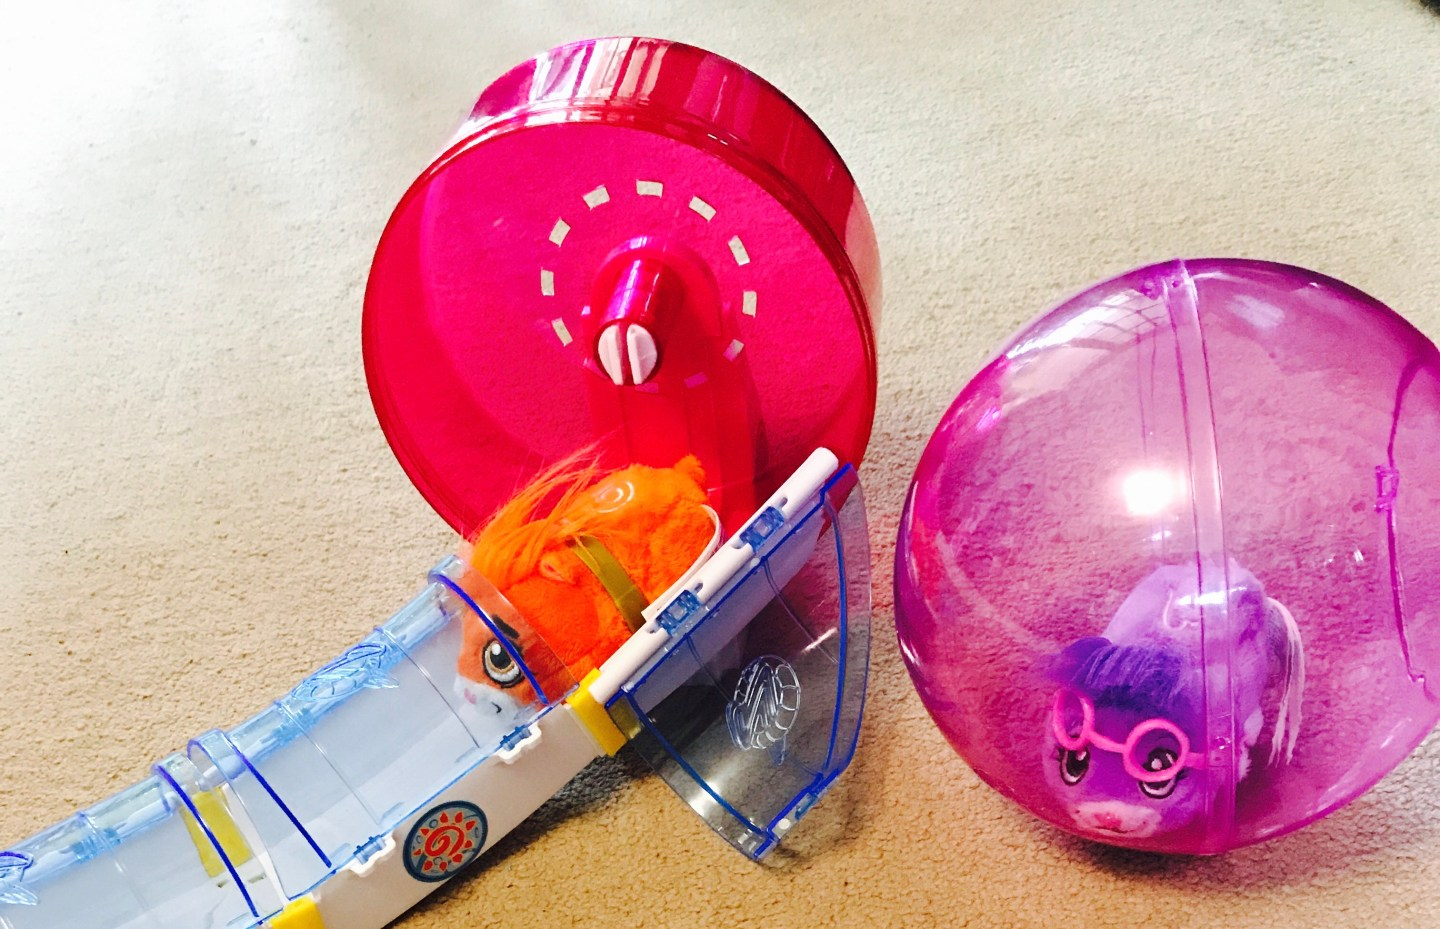 The Fast & The Furry – Zhu Zhu Pets & Accessories Review